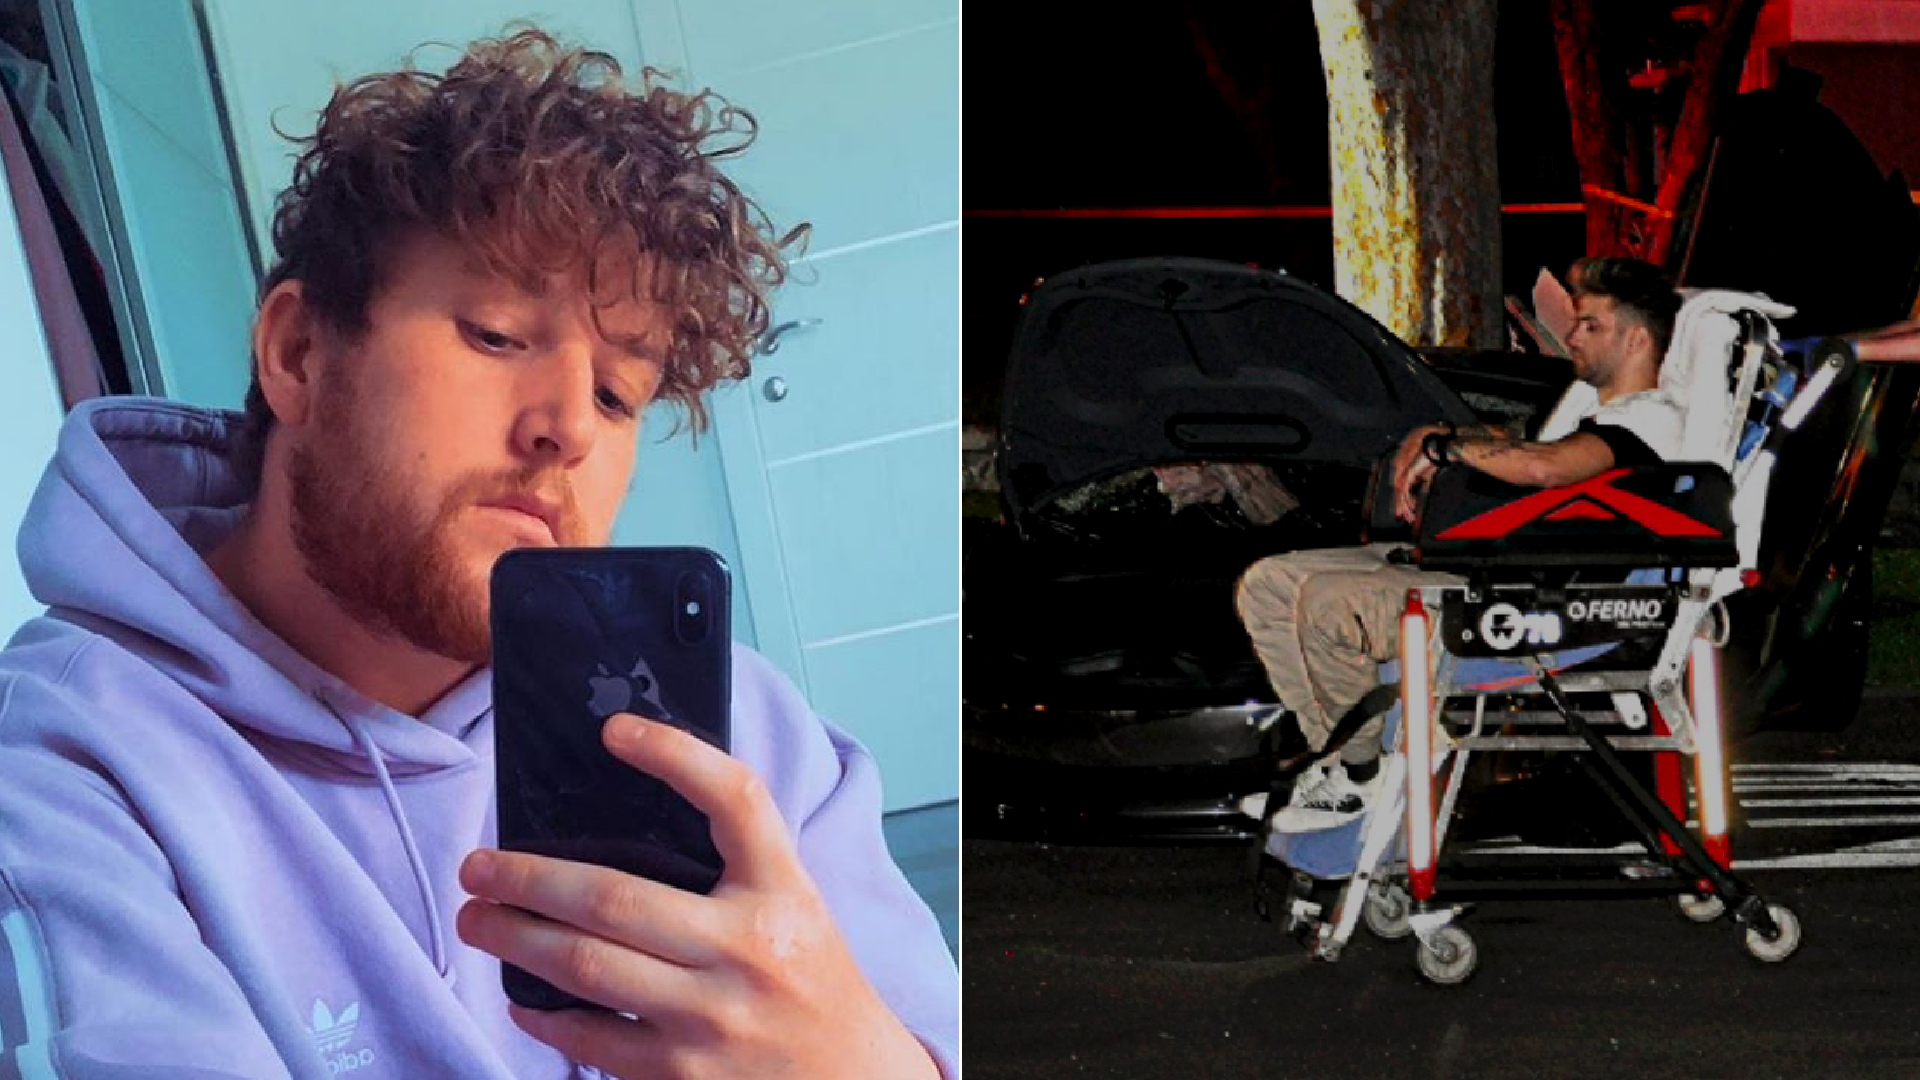 Corey La Barrie, left, is seen in an undated photo shared by his mom and brother on Instagram. At right, Daniel Silva is transported from the scene of a suspected DUI crash in Valley Village on May 10, 2020. (OnScene.TV)